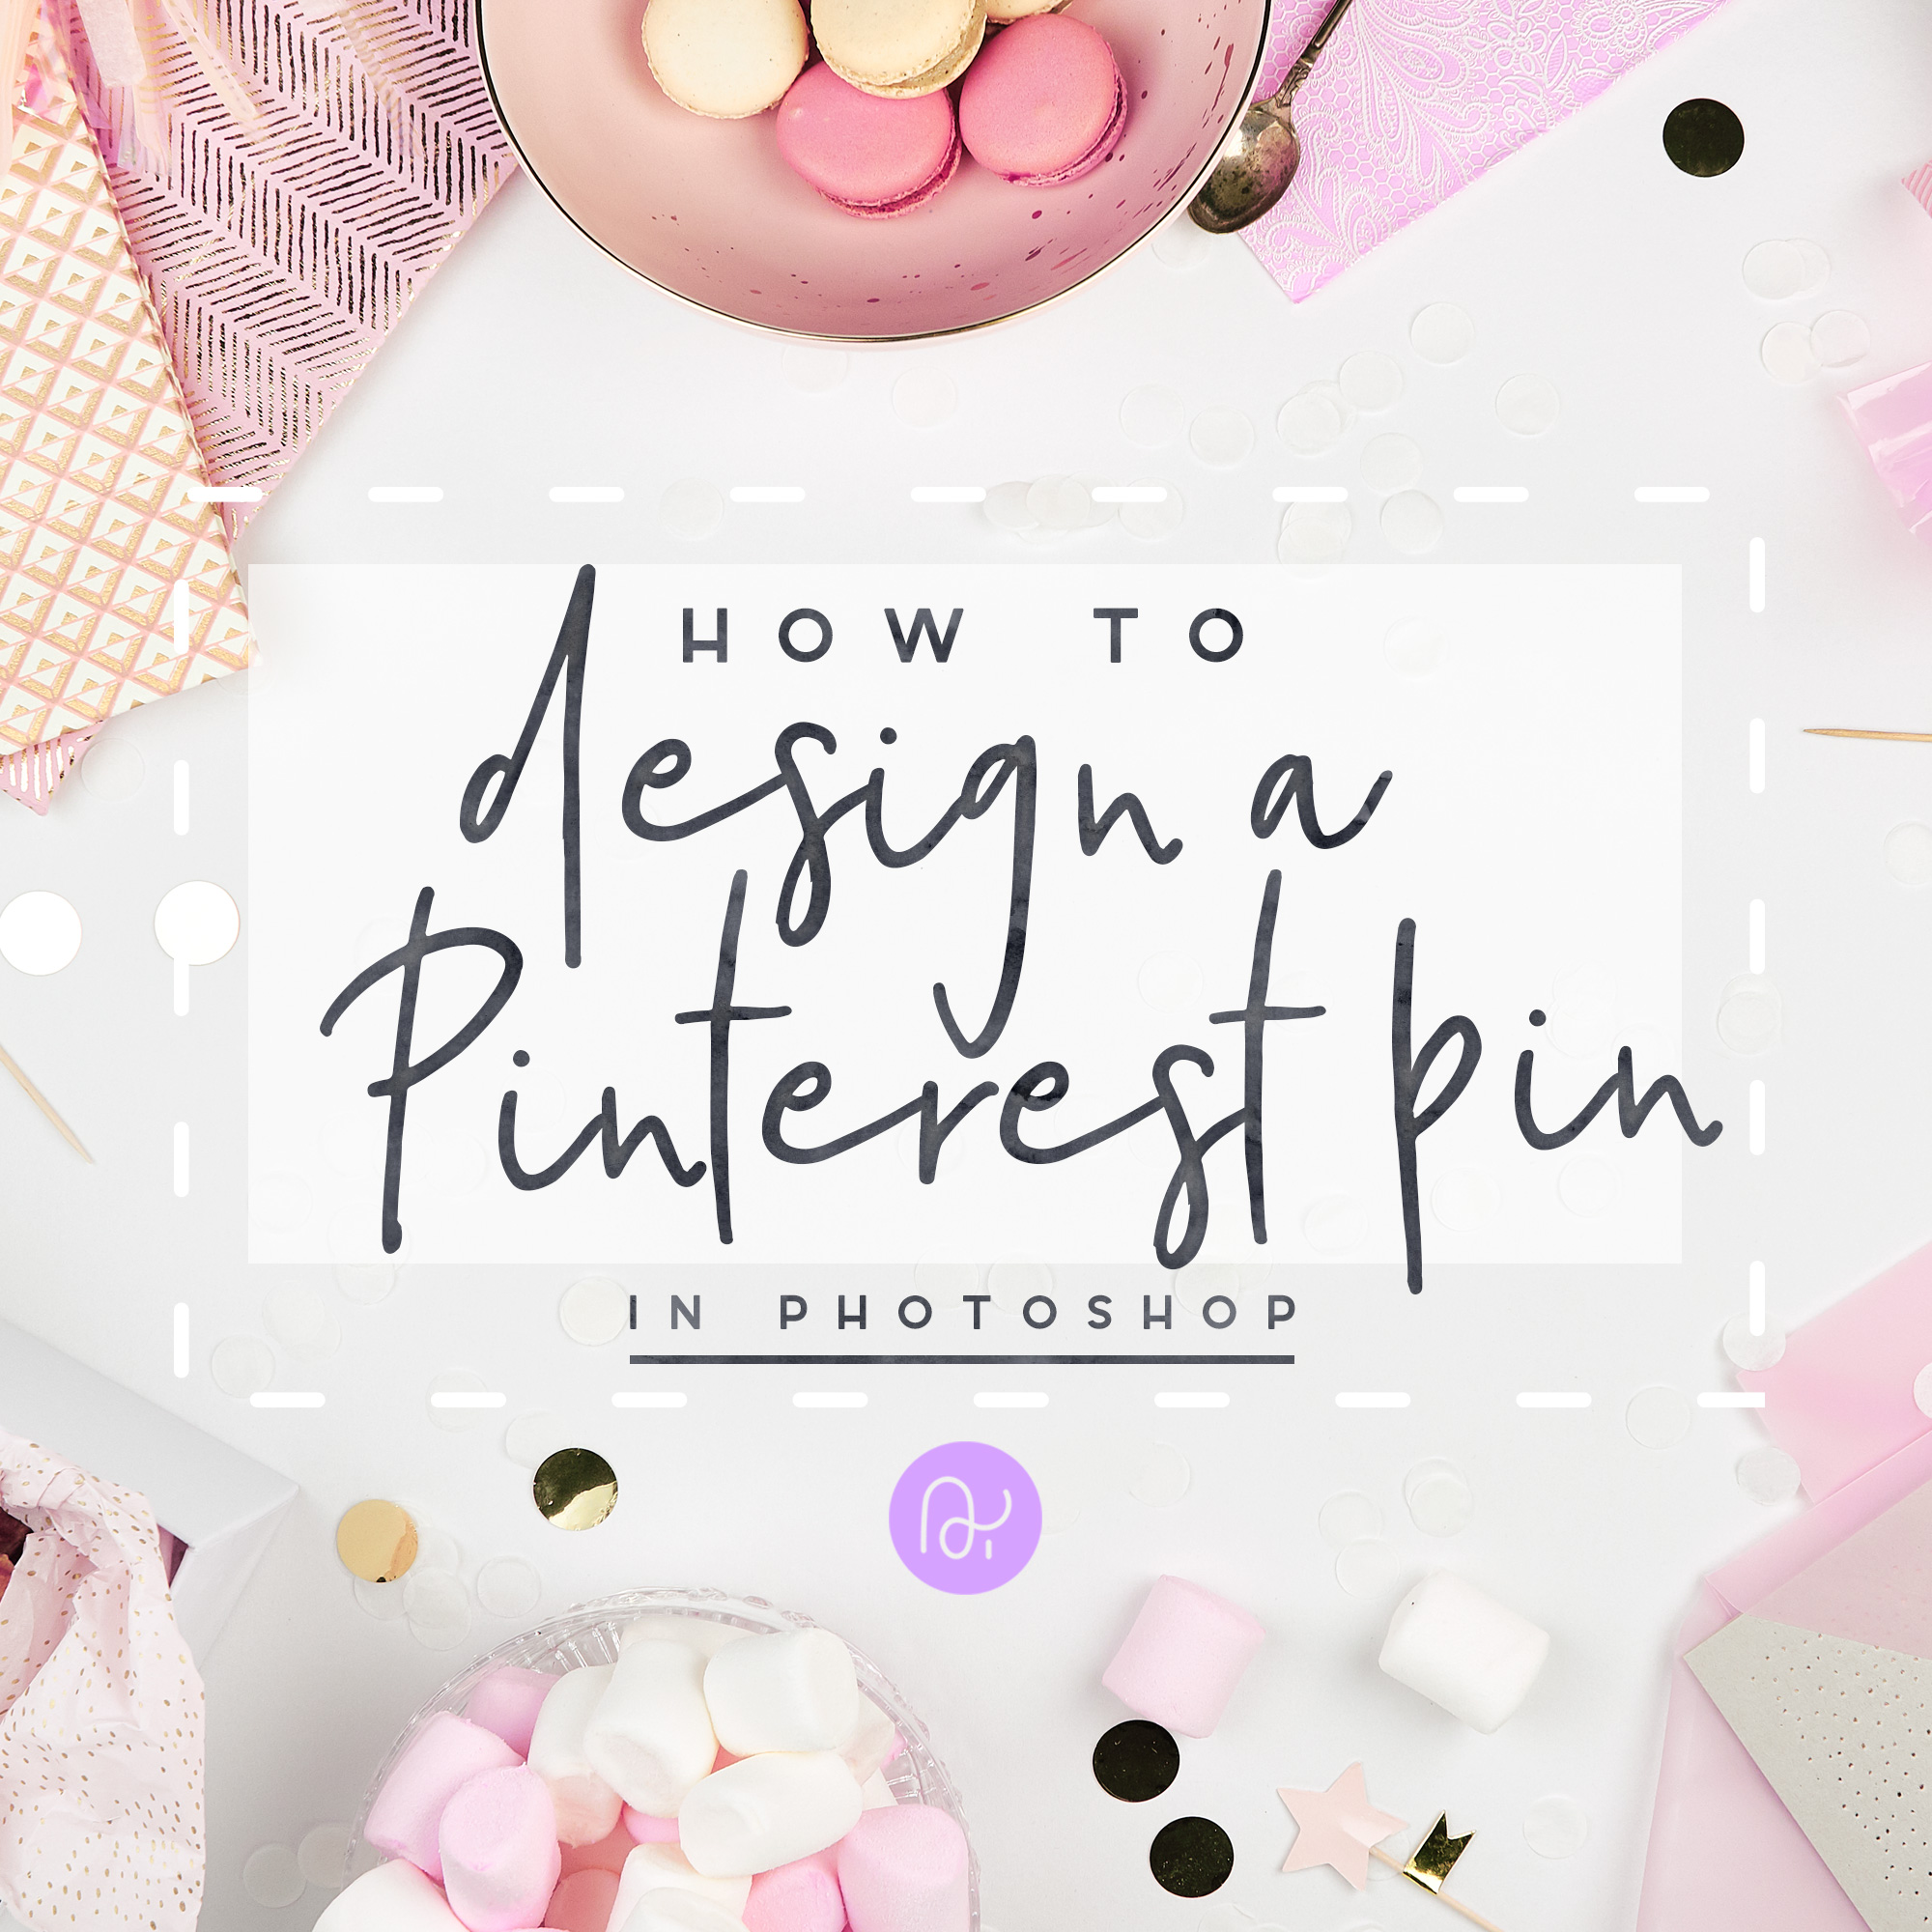 how to design create pinterest pin in photoshop tutorial stock images instagram ana yvy